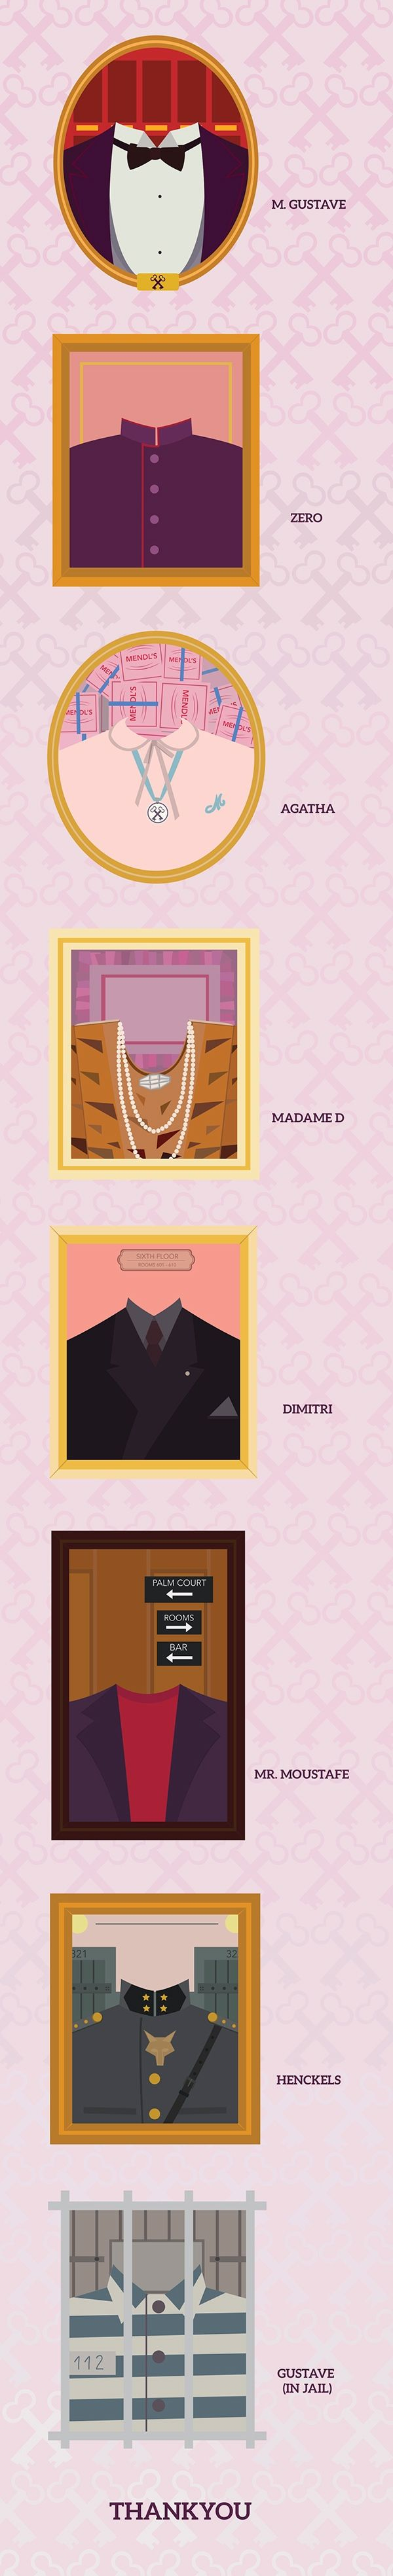 best ideas about budapest hotel movie wes the grand budapest hotel title sequence on behance